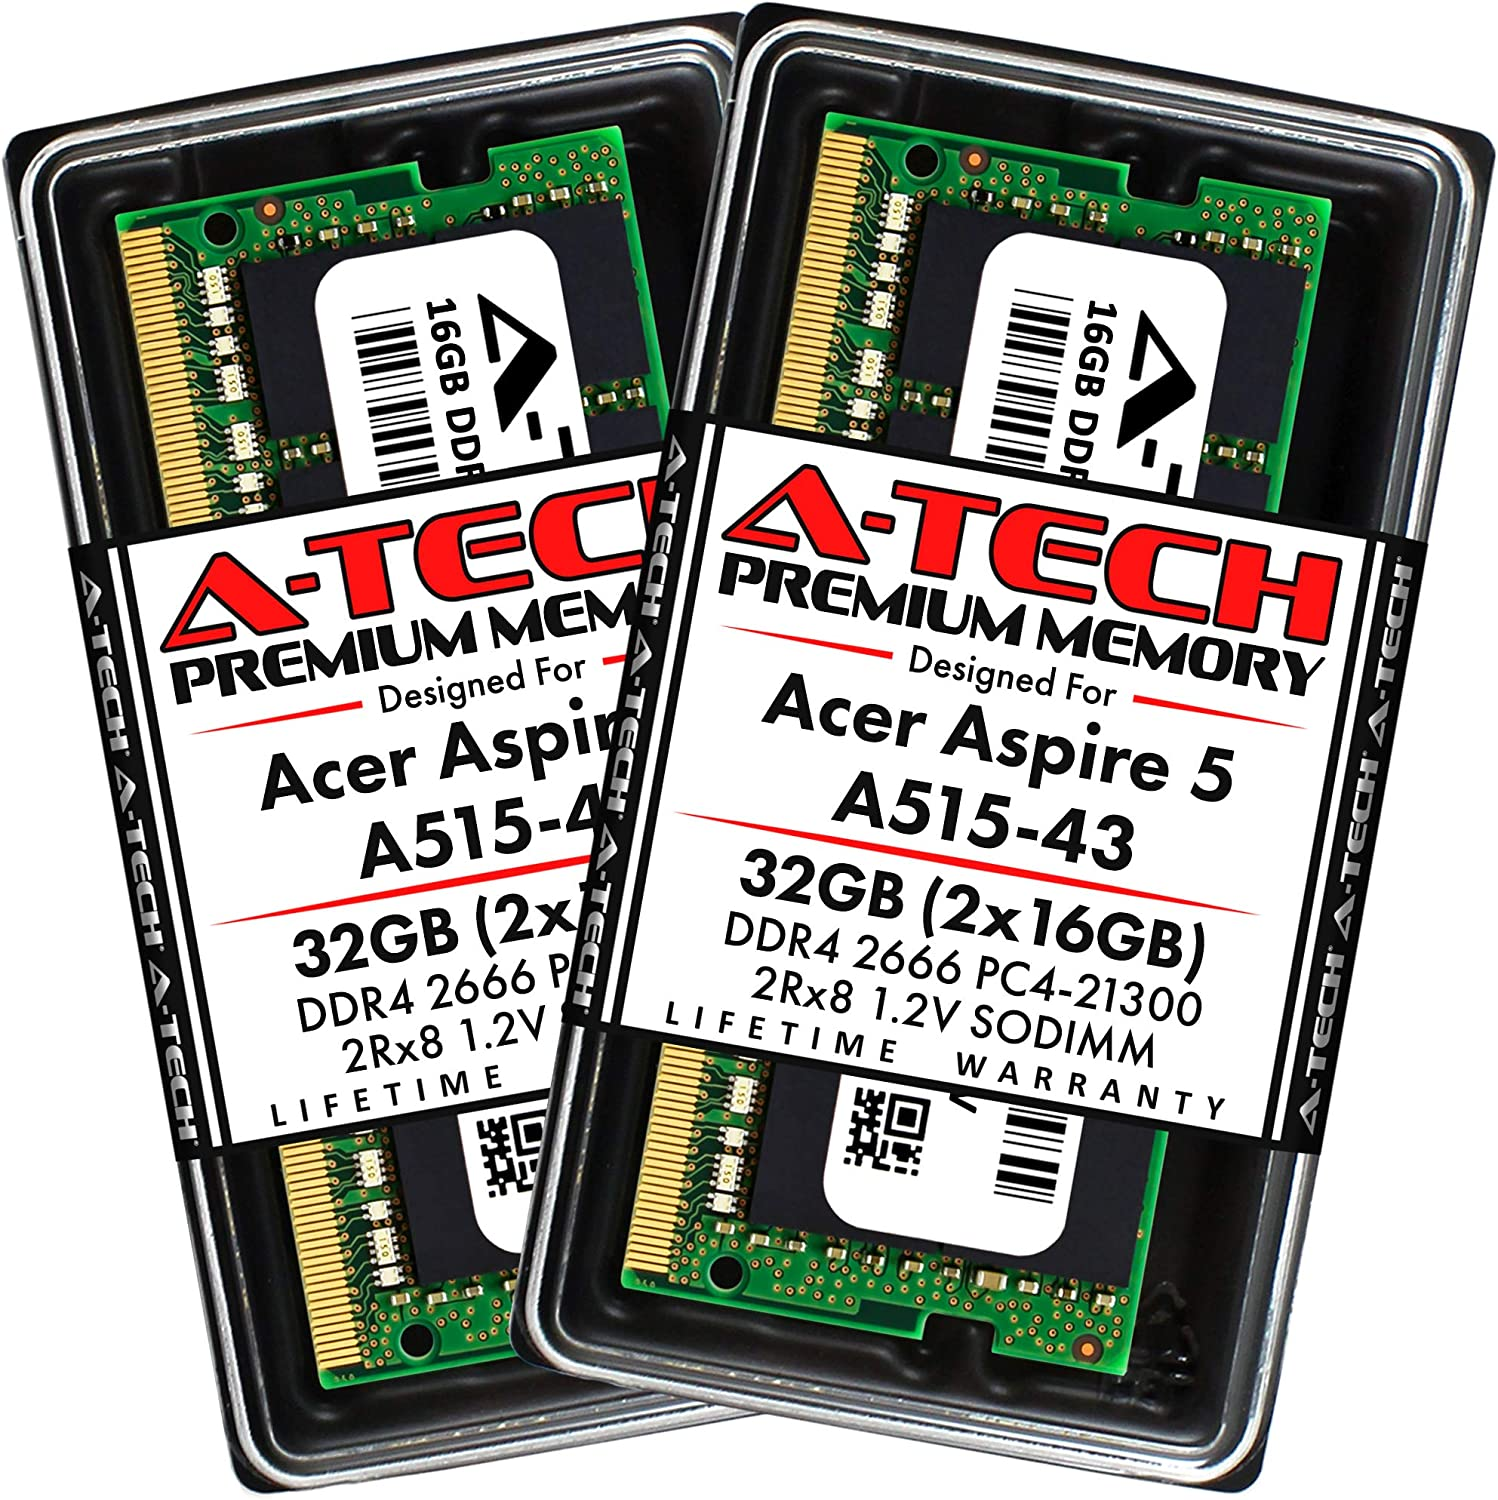 A-Tech 32GB (2x16GB) RAM for Acer Aspire 5 Slim Laptop A515-43 | DDR4 2666MHz SODIMM PC4-21300 260-Pin CL19 1.2V Non-ECC Unbuffered Max Memory Upgrade Kit